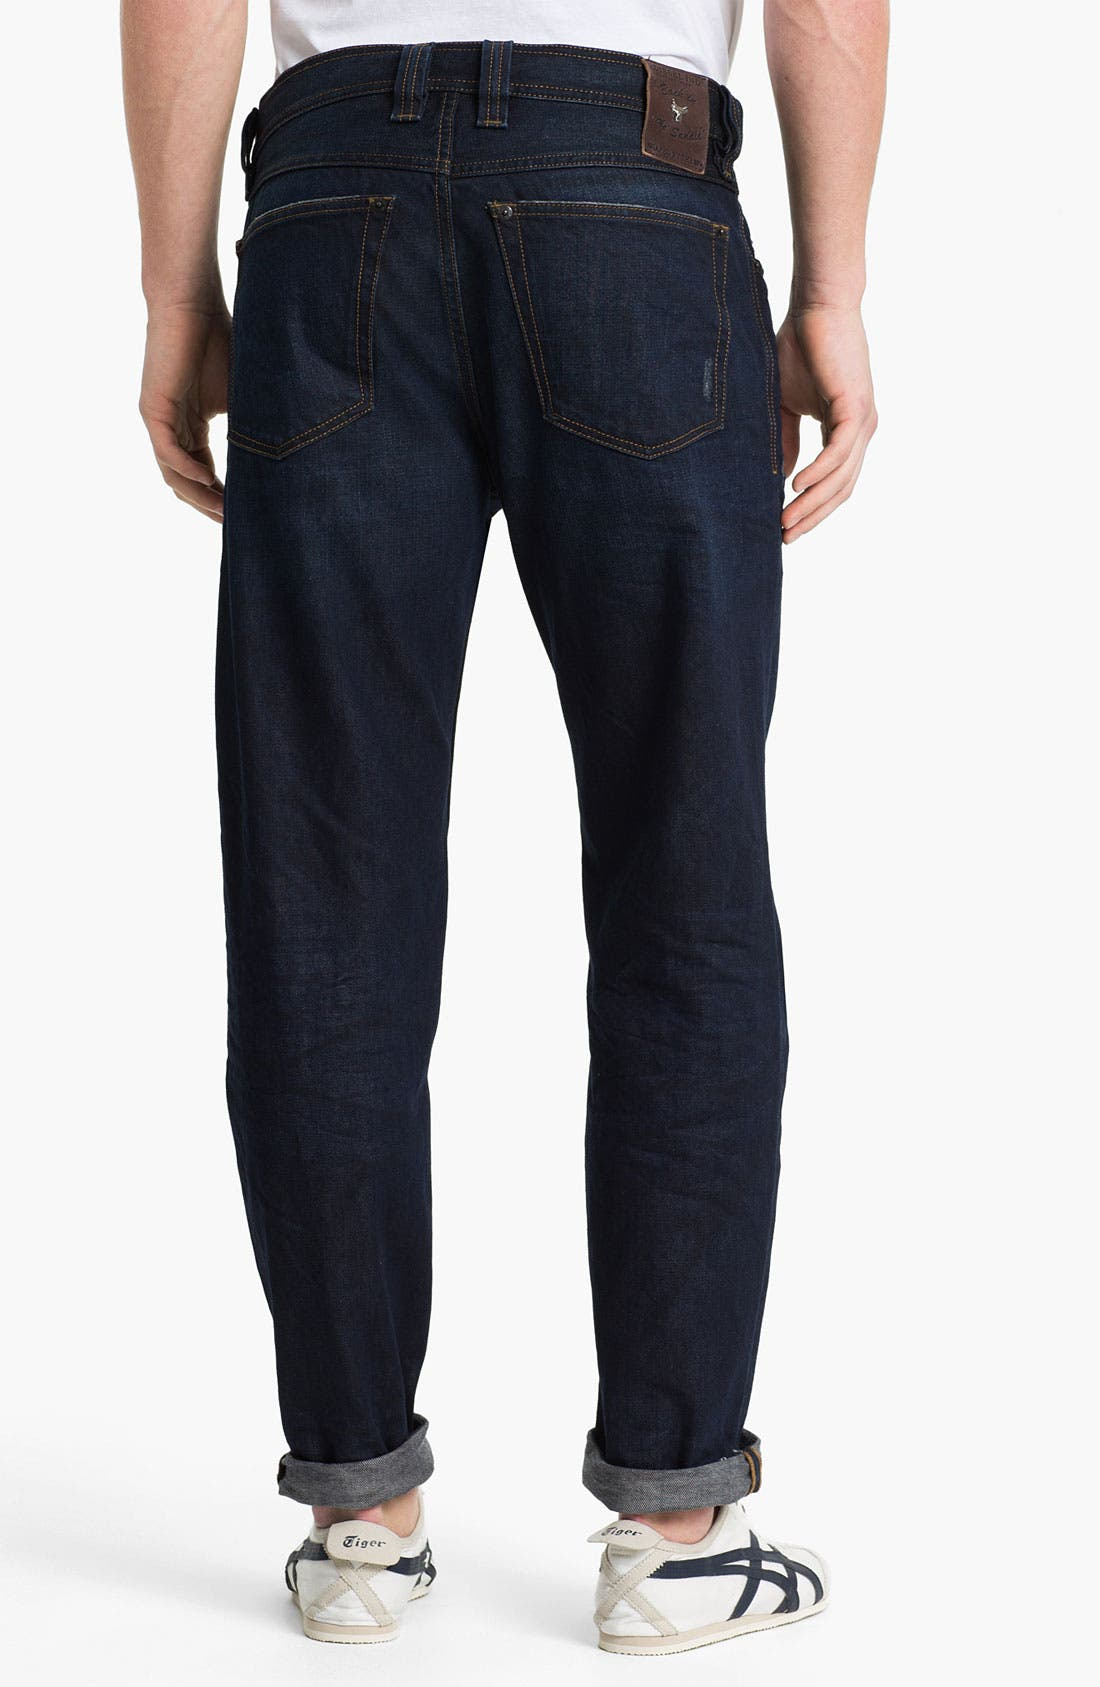 'Back in the Saddle' Relaxed Tapered Leg Jeans,                             Main thumbnail 1, color,                             0806X